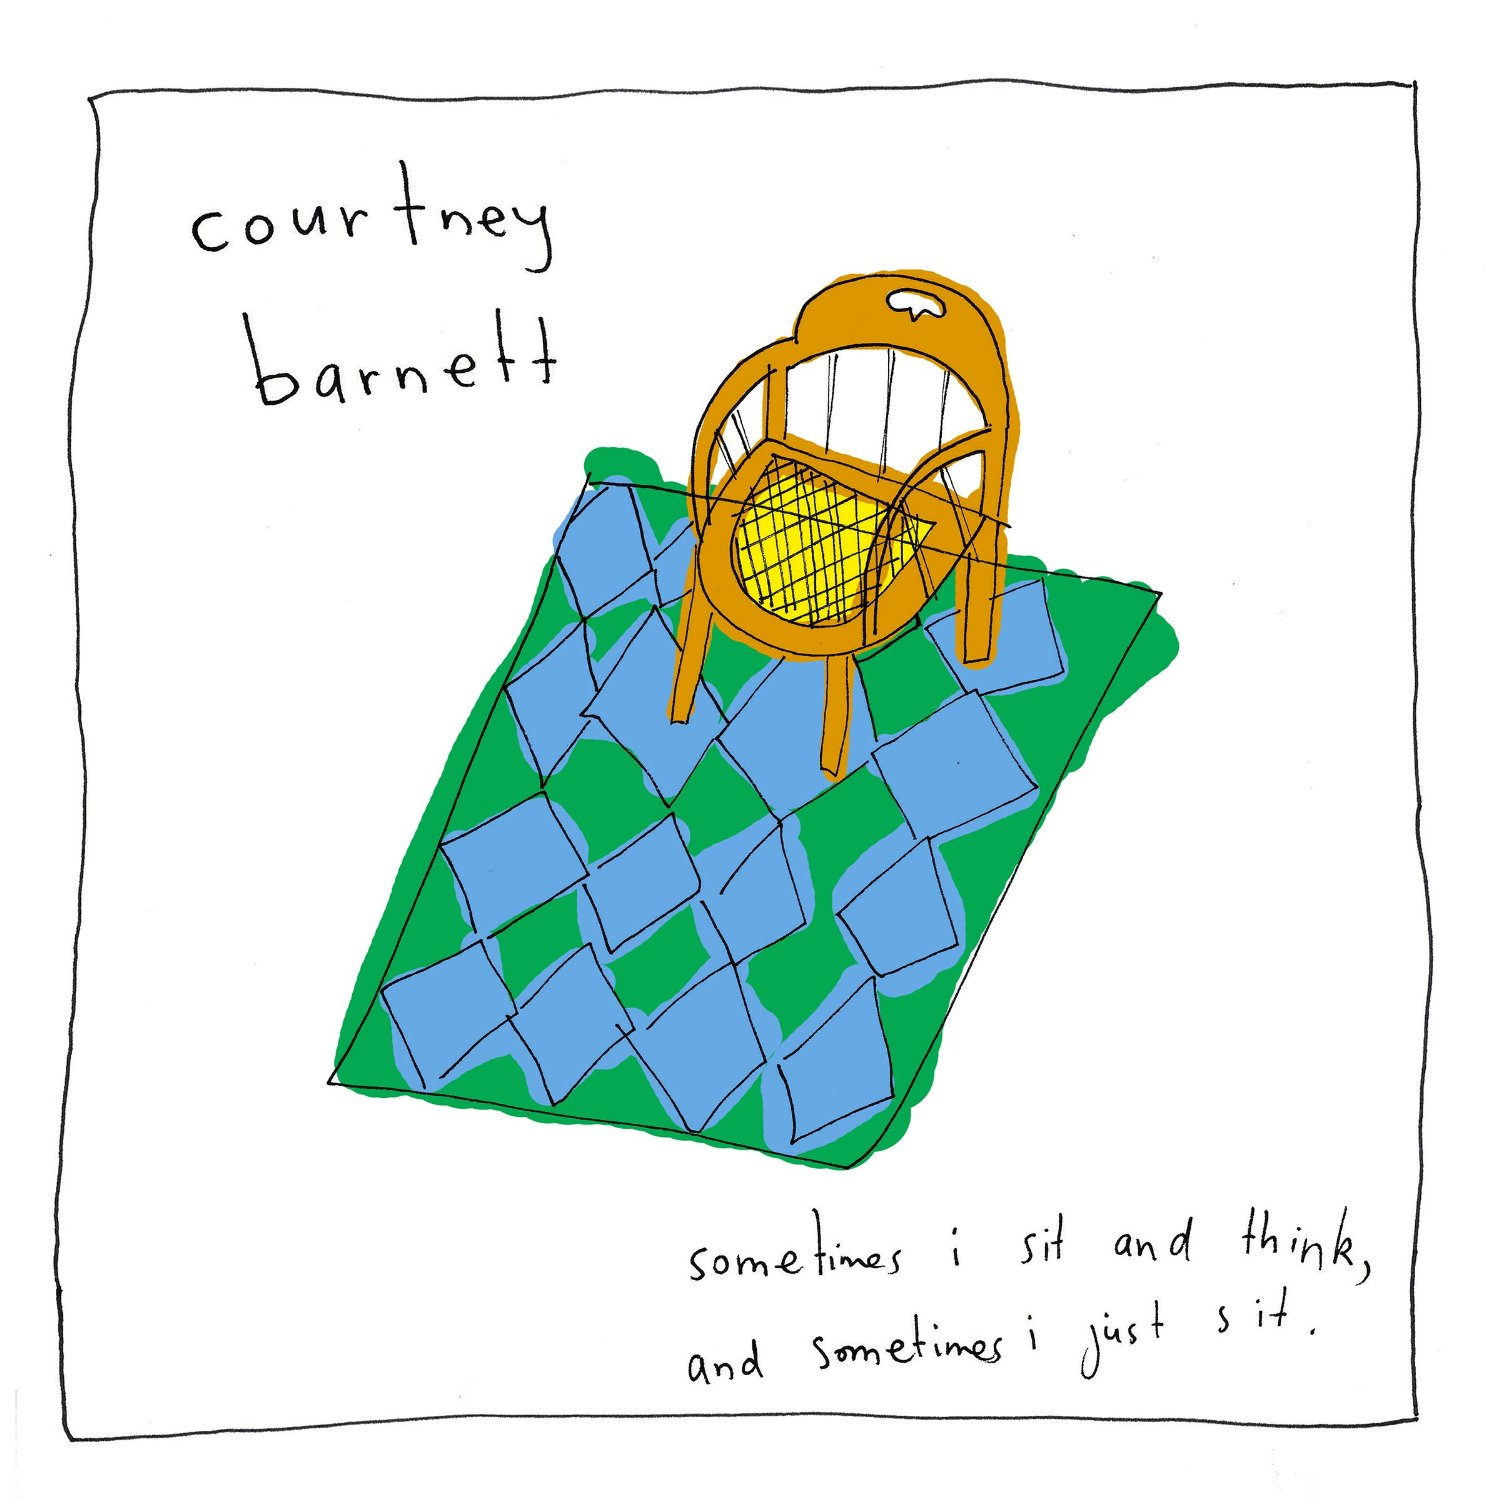 courtney-barnett-sometimes-i-sit-and-think